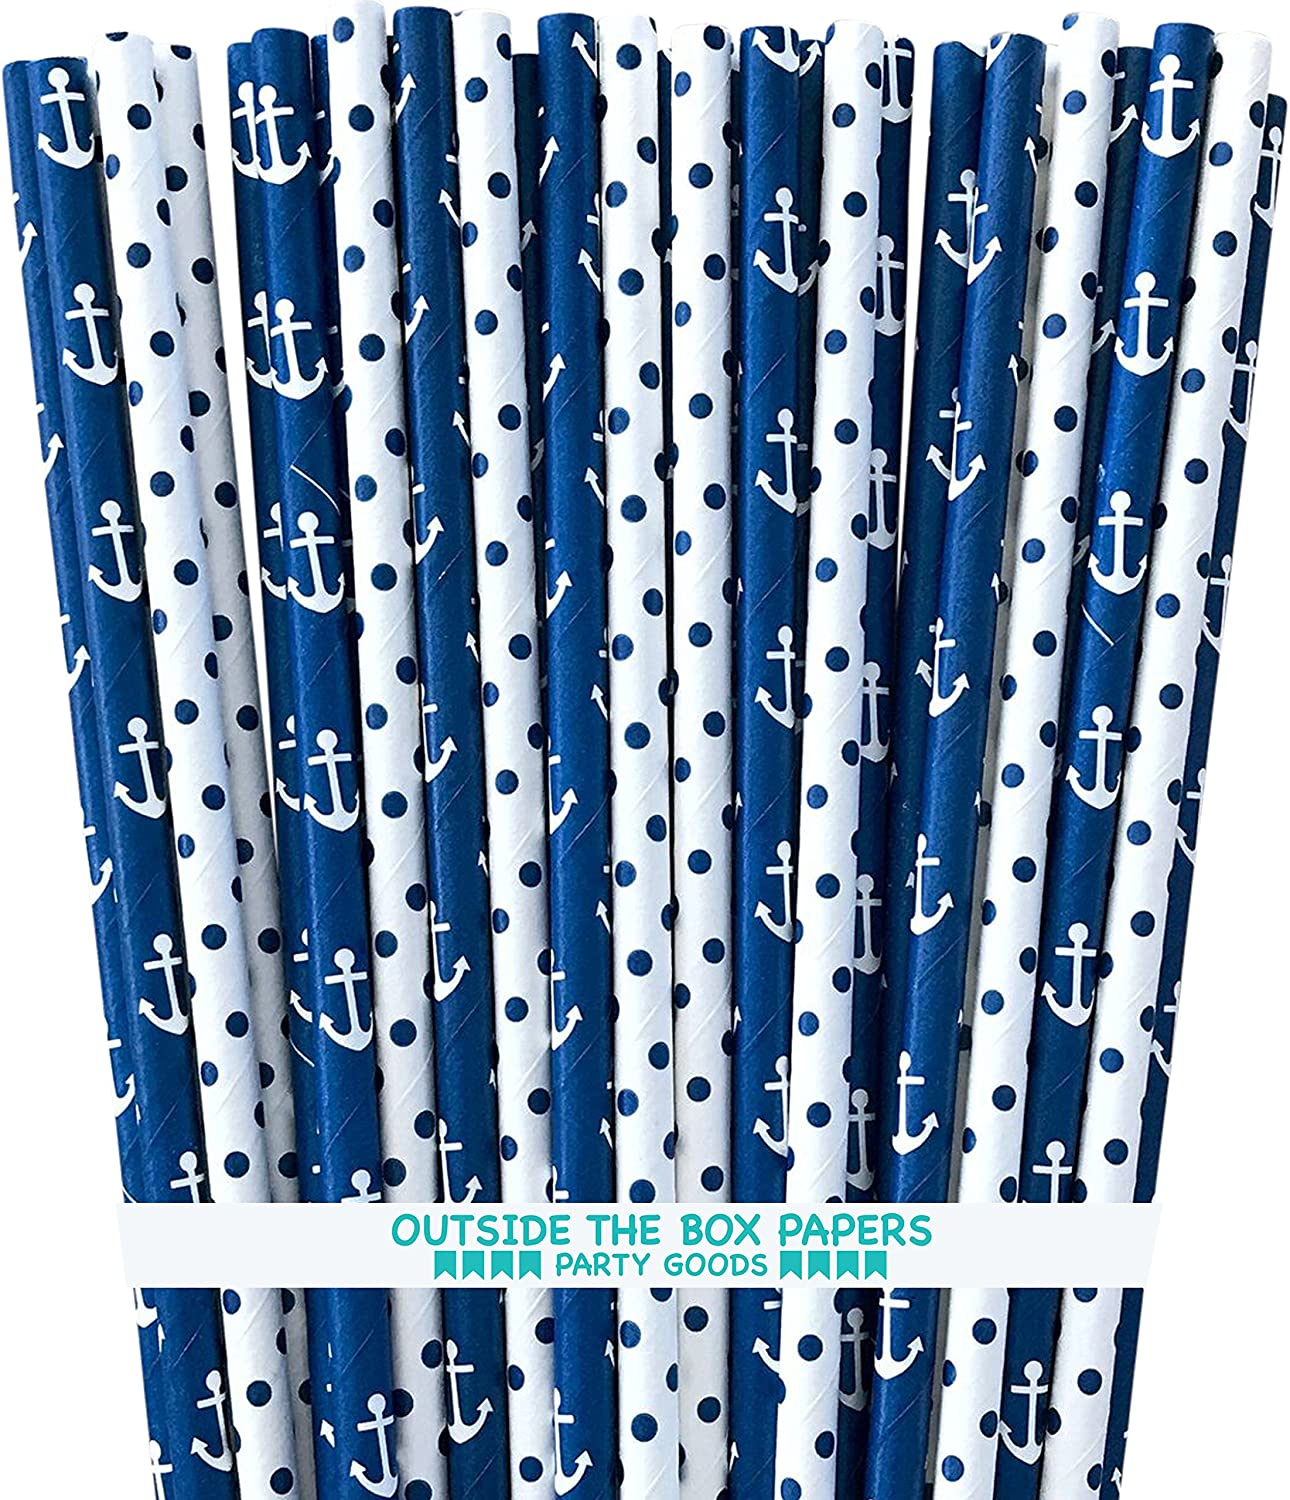 Nautical Theme Anchor and Polka Dot Nautical Theme Paper Straws - Navy Blue and White - 7.75 Inches - 100 Pack